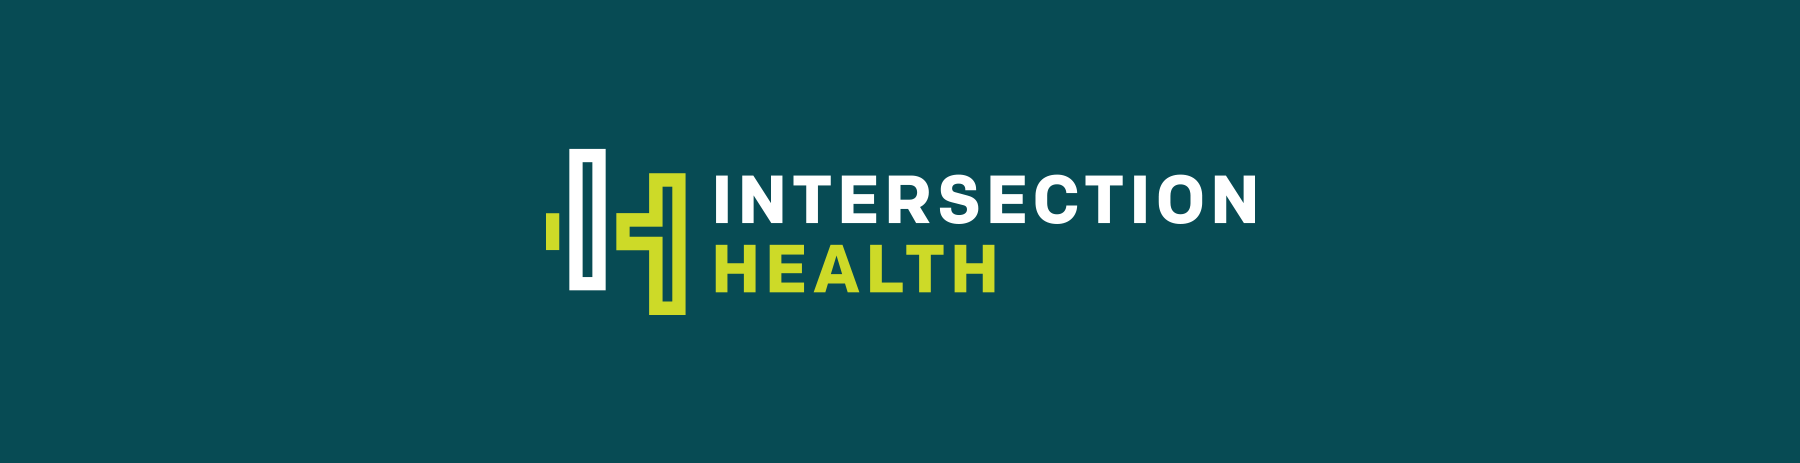 logo-intersectionhealth-cropped-02